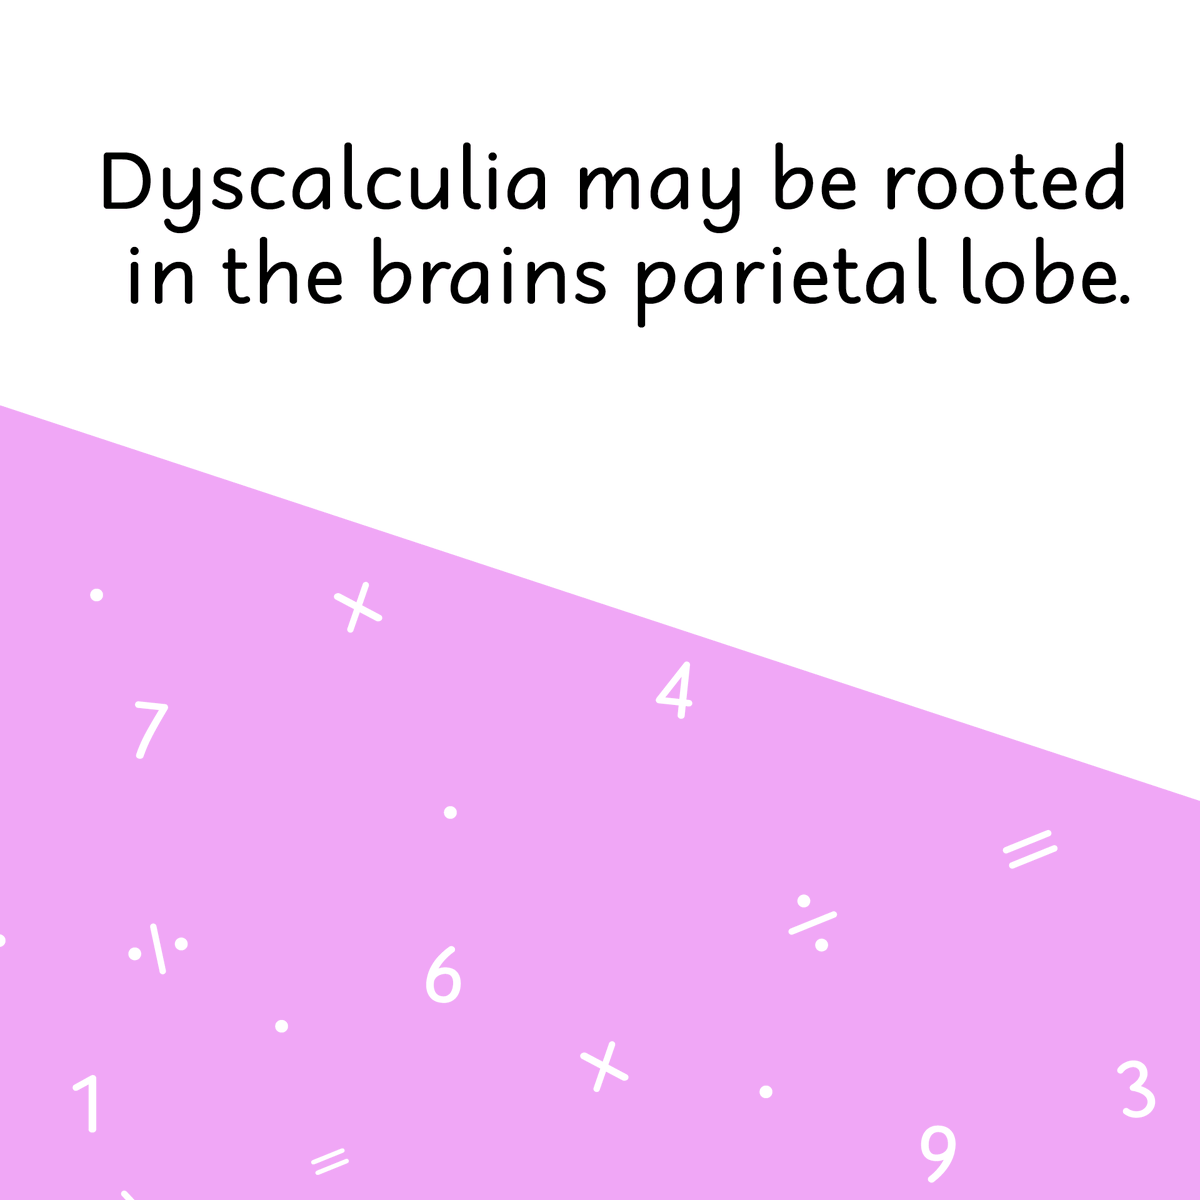 A study was done @UCL_ICN and found that the right parietal lobe is responsible for dyscalculia.  However, dyscalculia has not been given the same attention as other learning differences and the underlying brain cause of dyscalculia is still a mystery.  #UCL #dyscalculia #brain